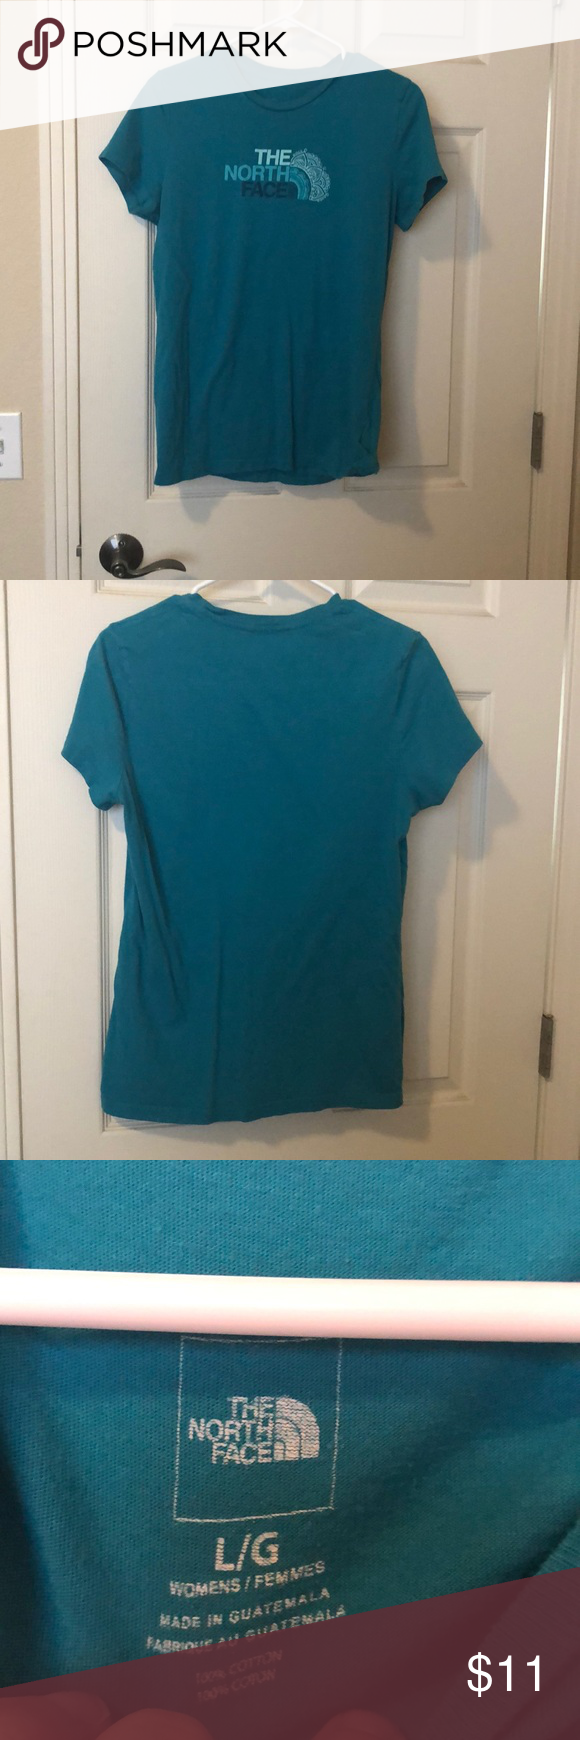 b0f1d92082 Northface women's shirt Northface womens shirt. Black. Shortsleeve size  large. Not faded. Great condition. The North Face Tops Tees …